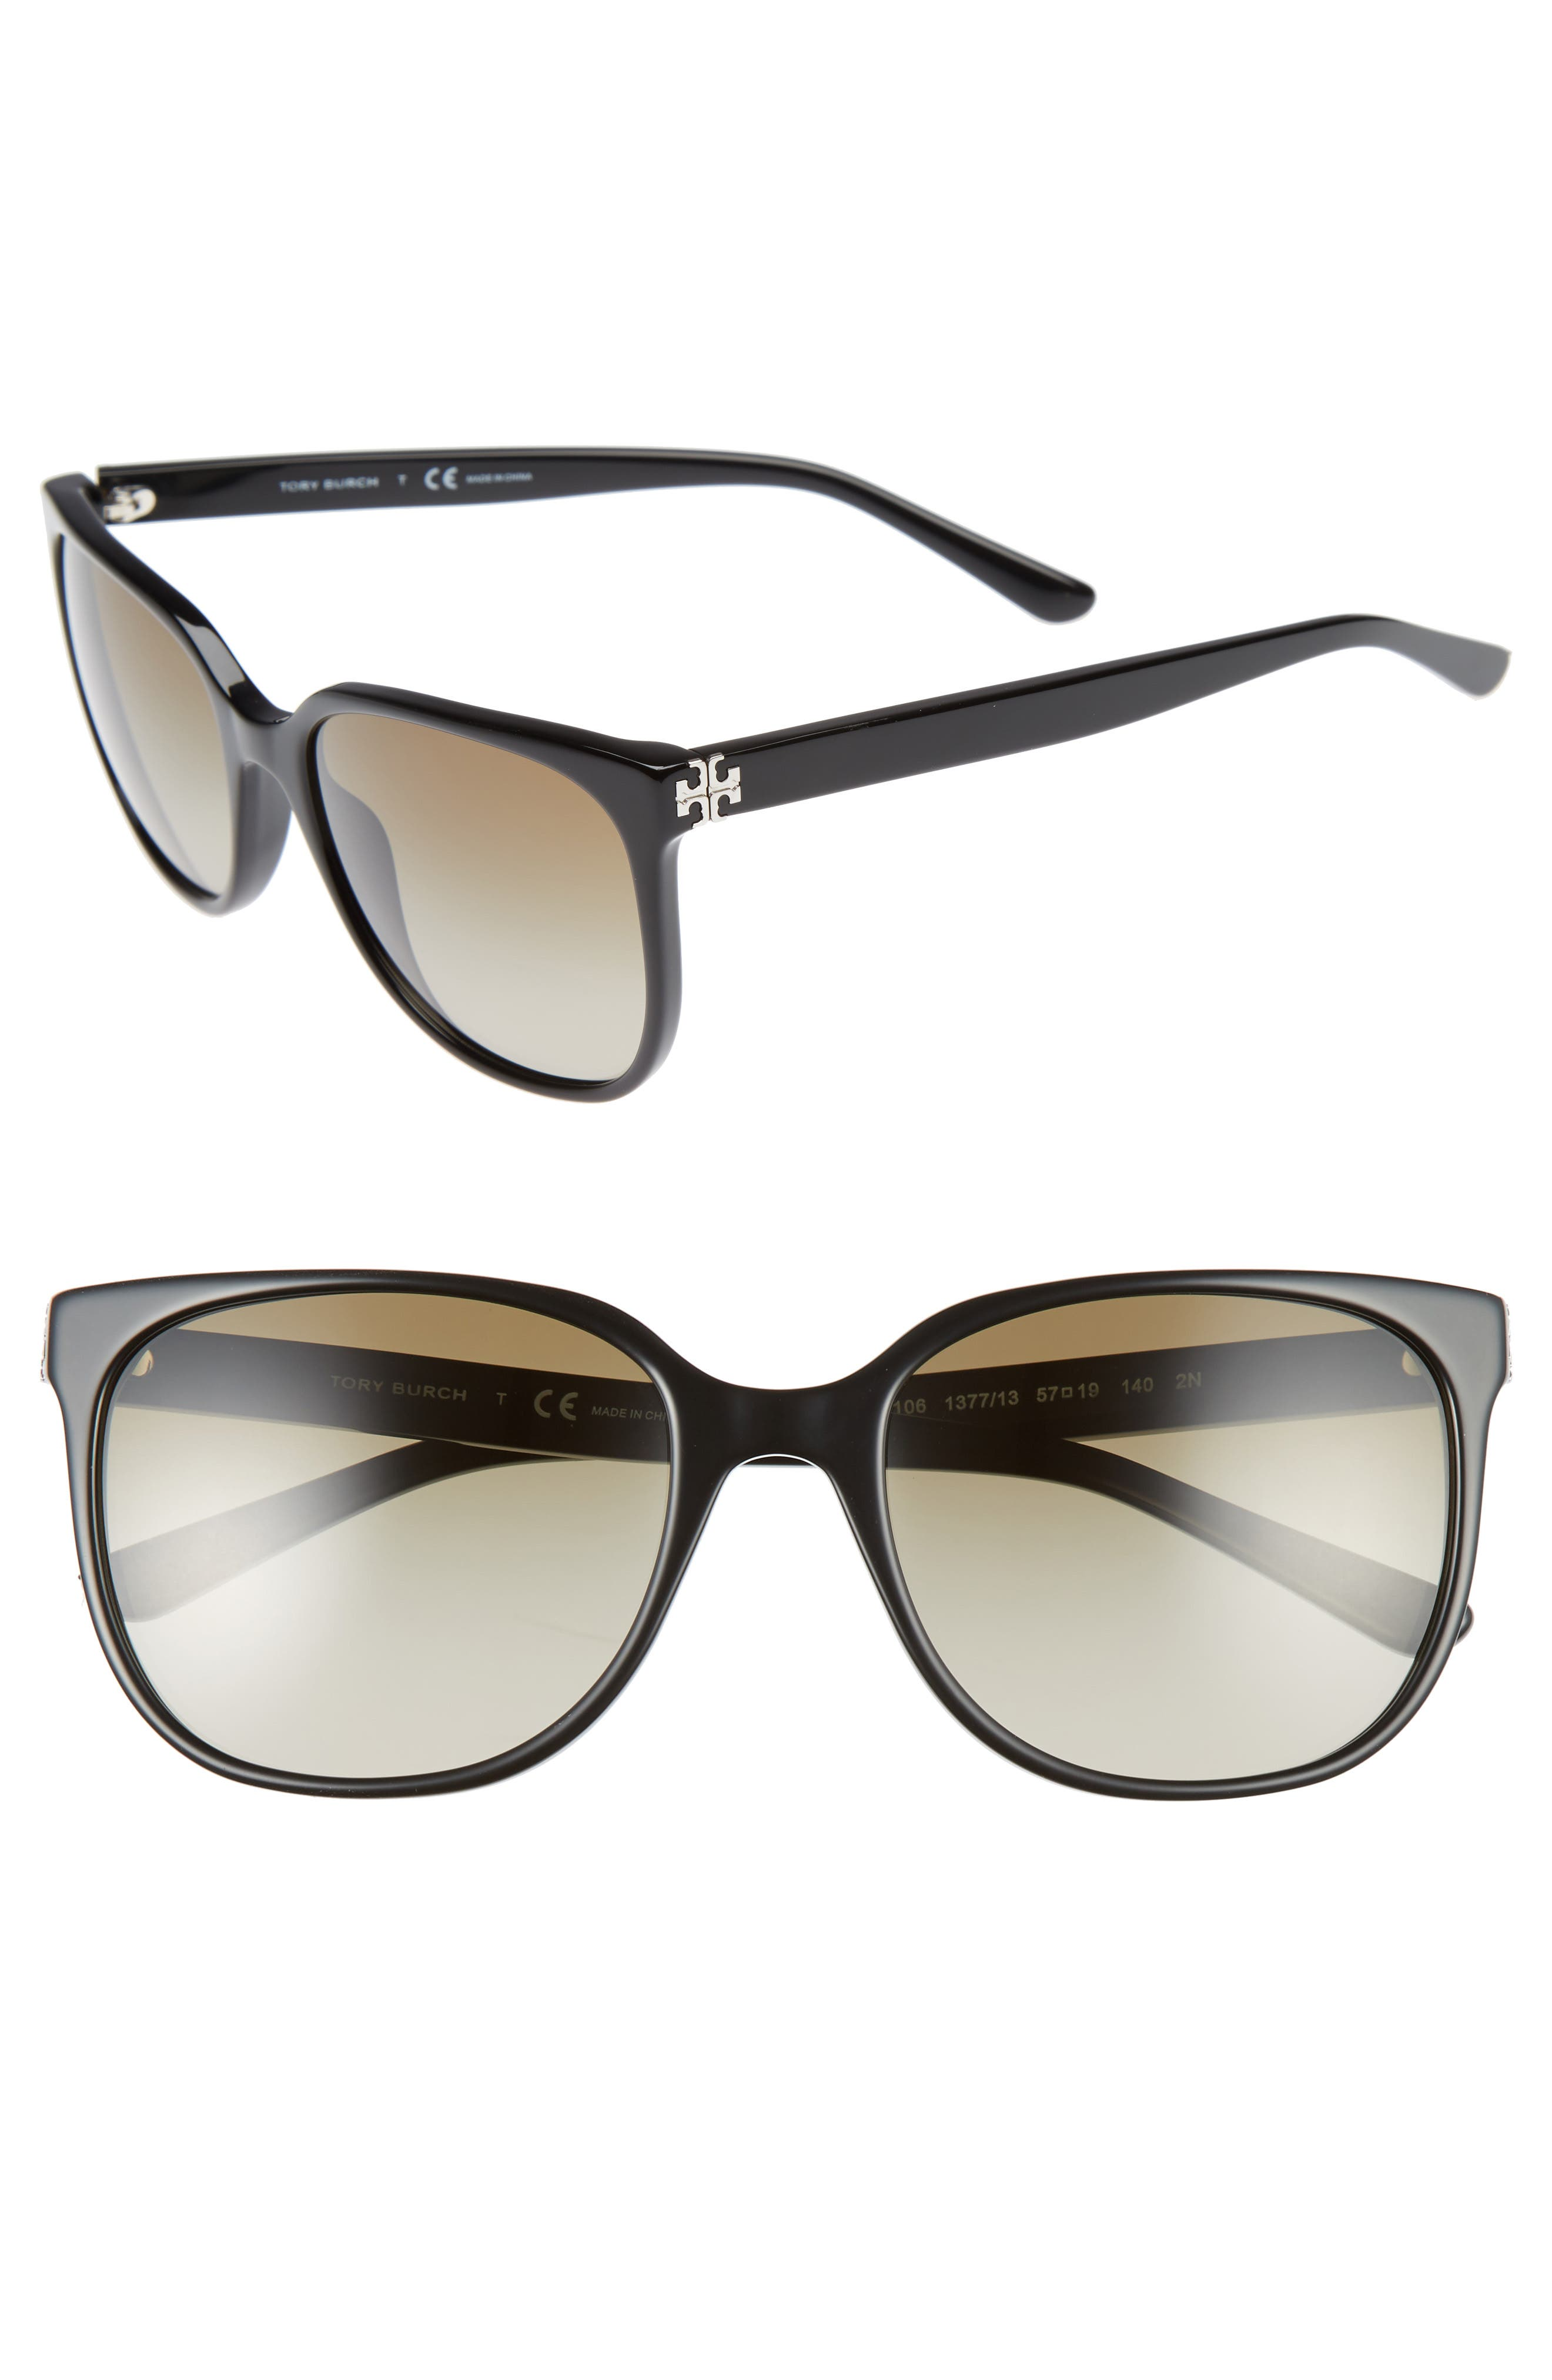 Tory Burch 57mm Gradient Sunglasses Nordstrom